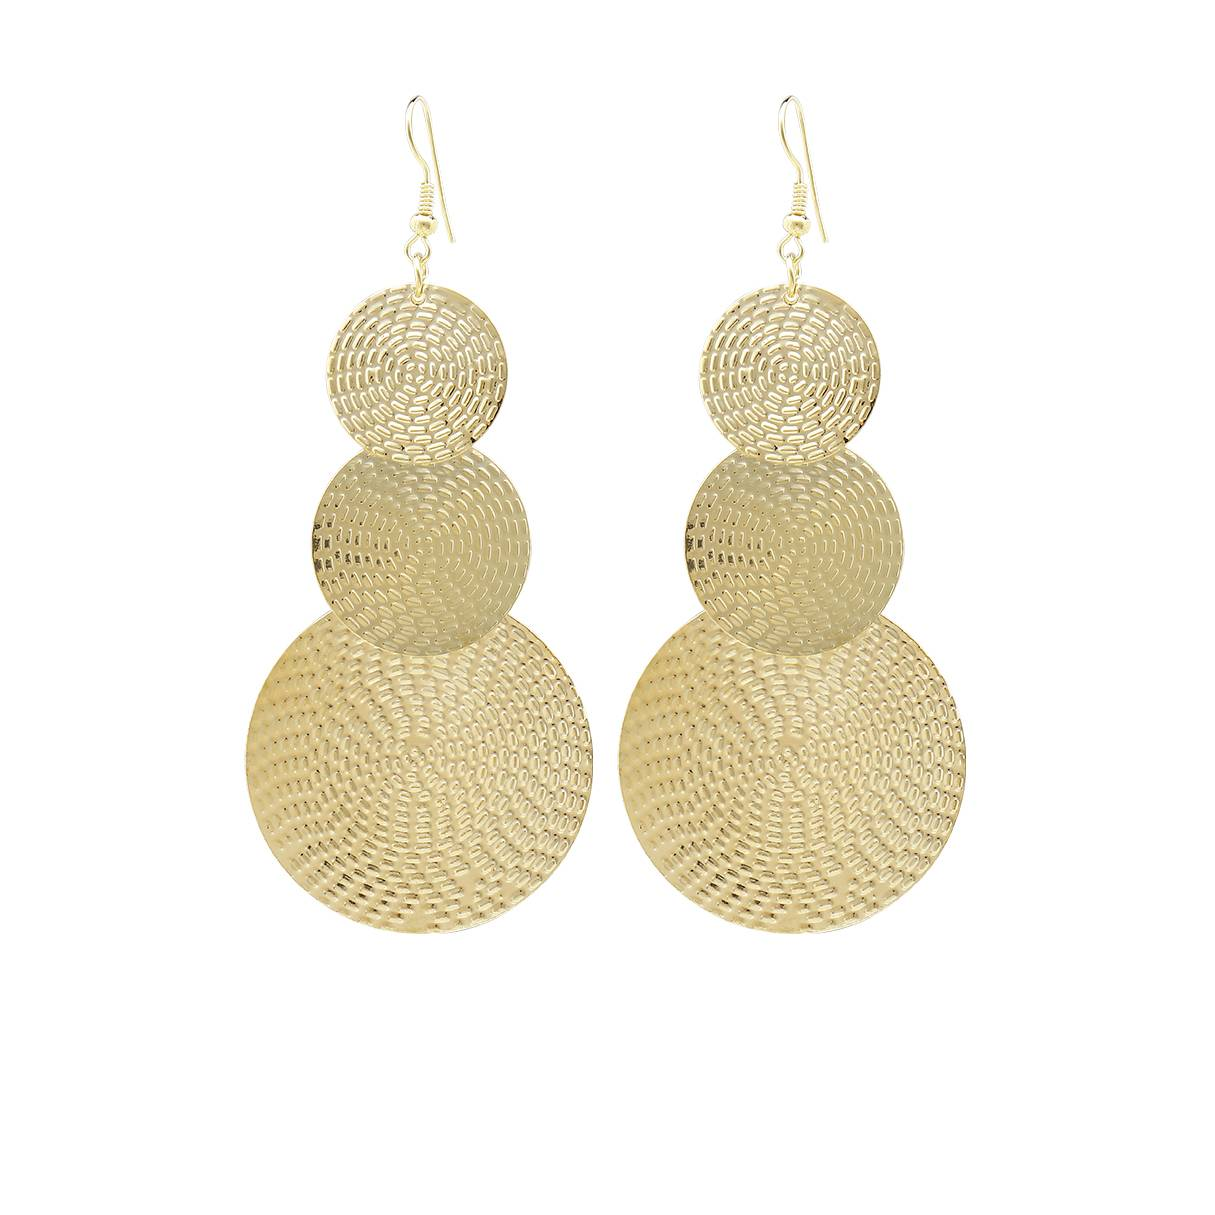 Yoins Gold Exaggerated Discs Metal Earrings  - women - Gold - Size: One Size